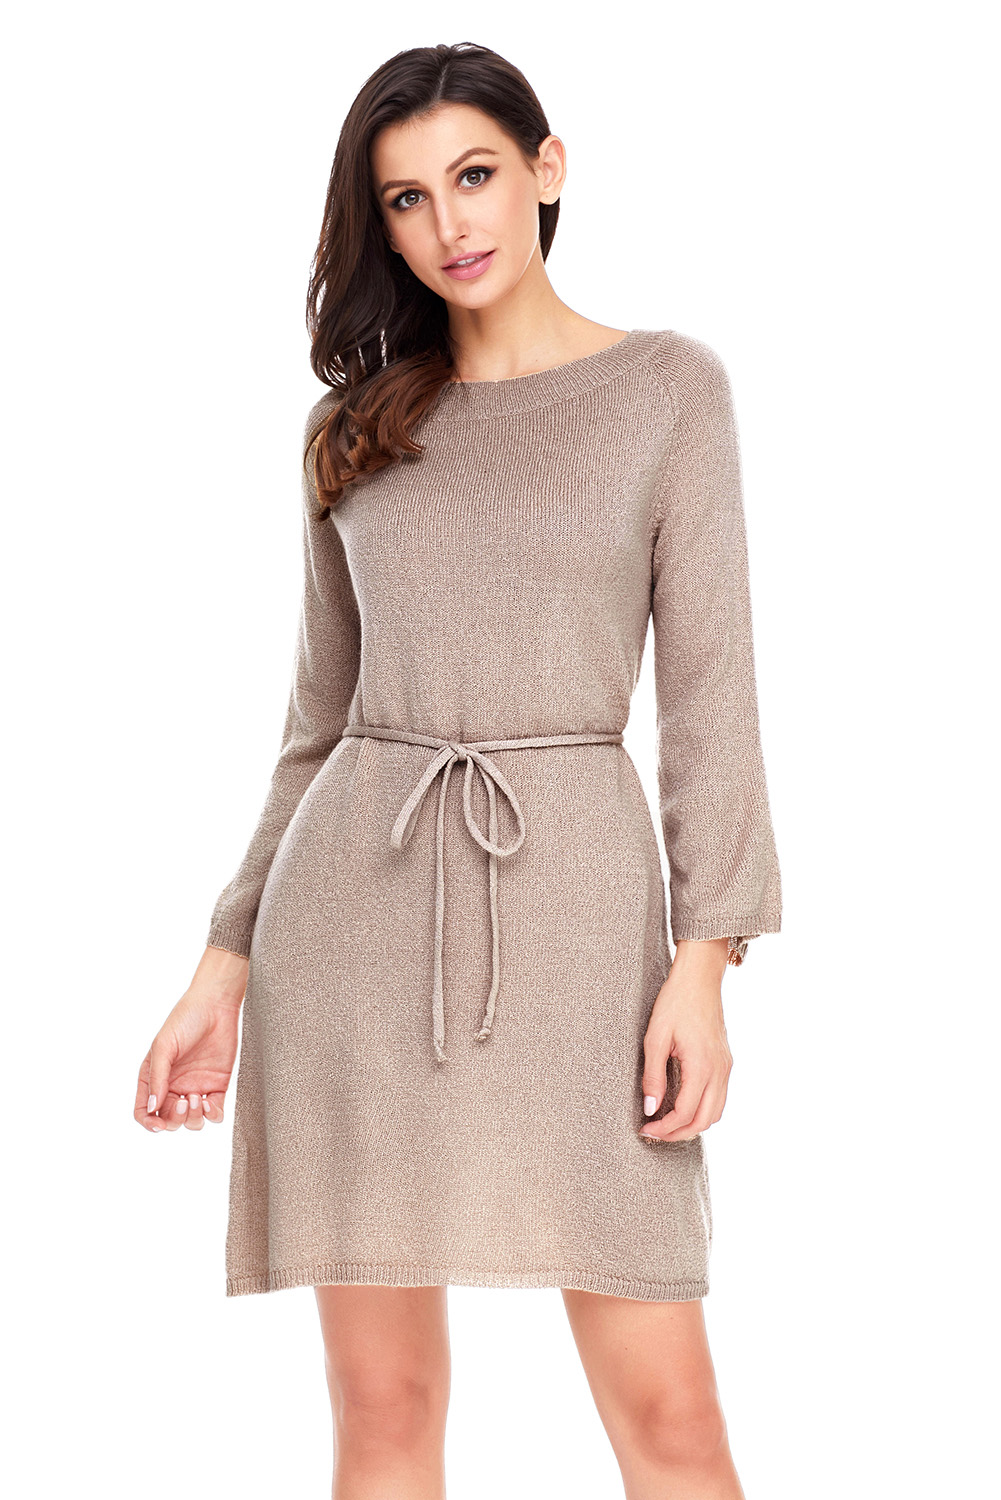 Off The Shoulder Knit Sweater Dress Tunic Autumn Winter Women Crew